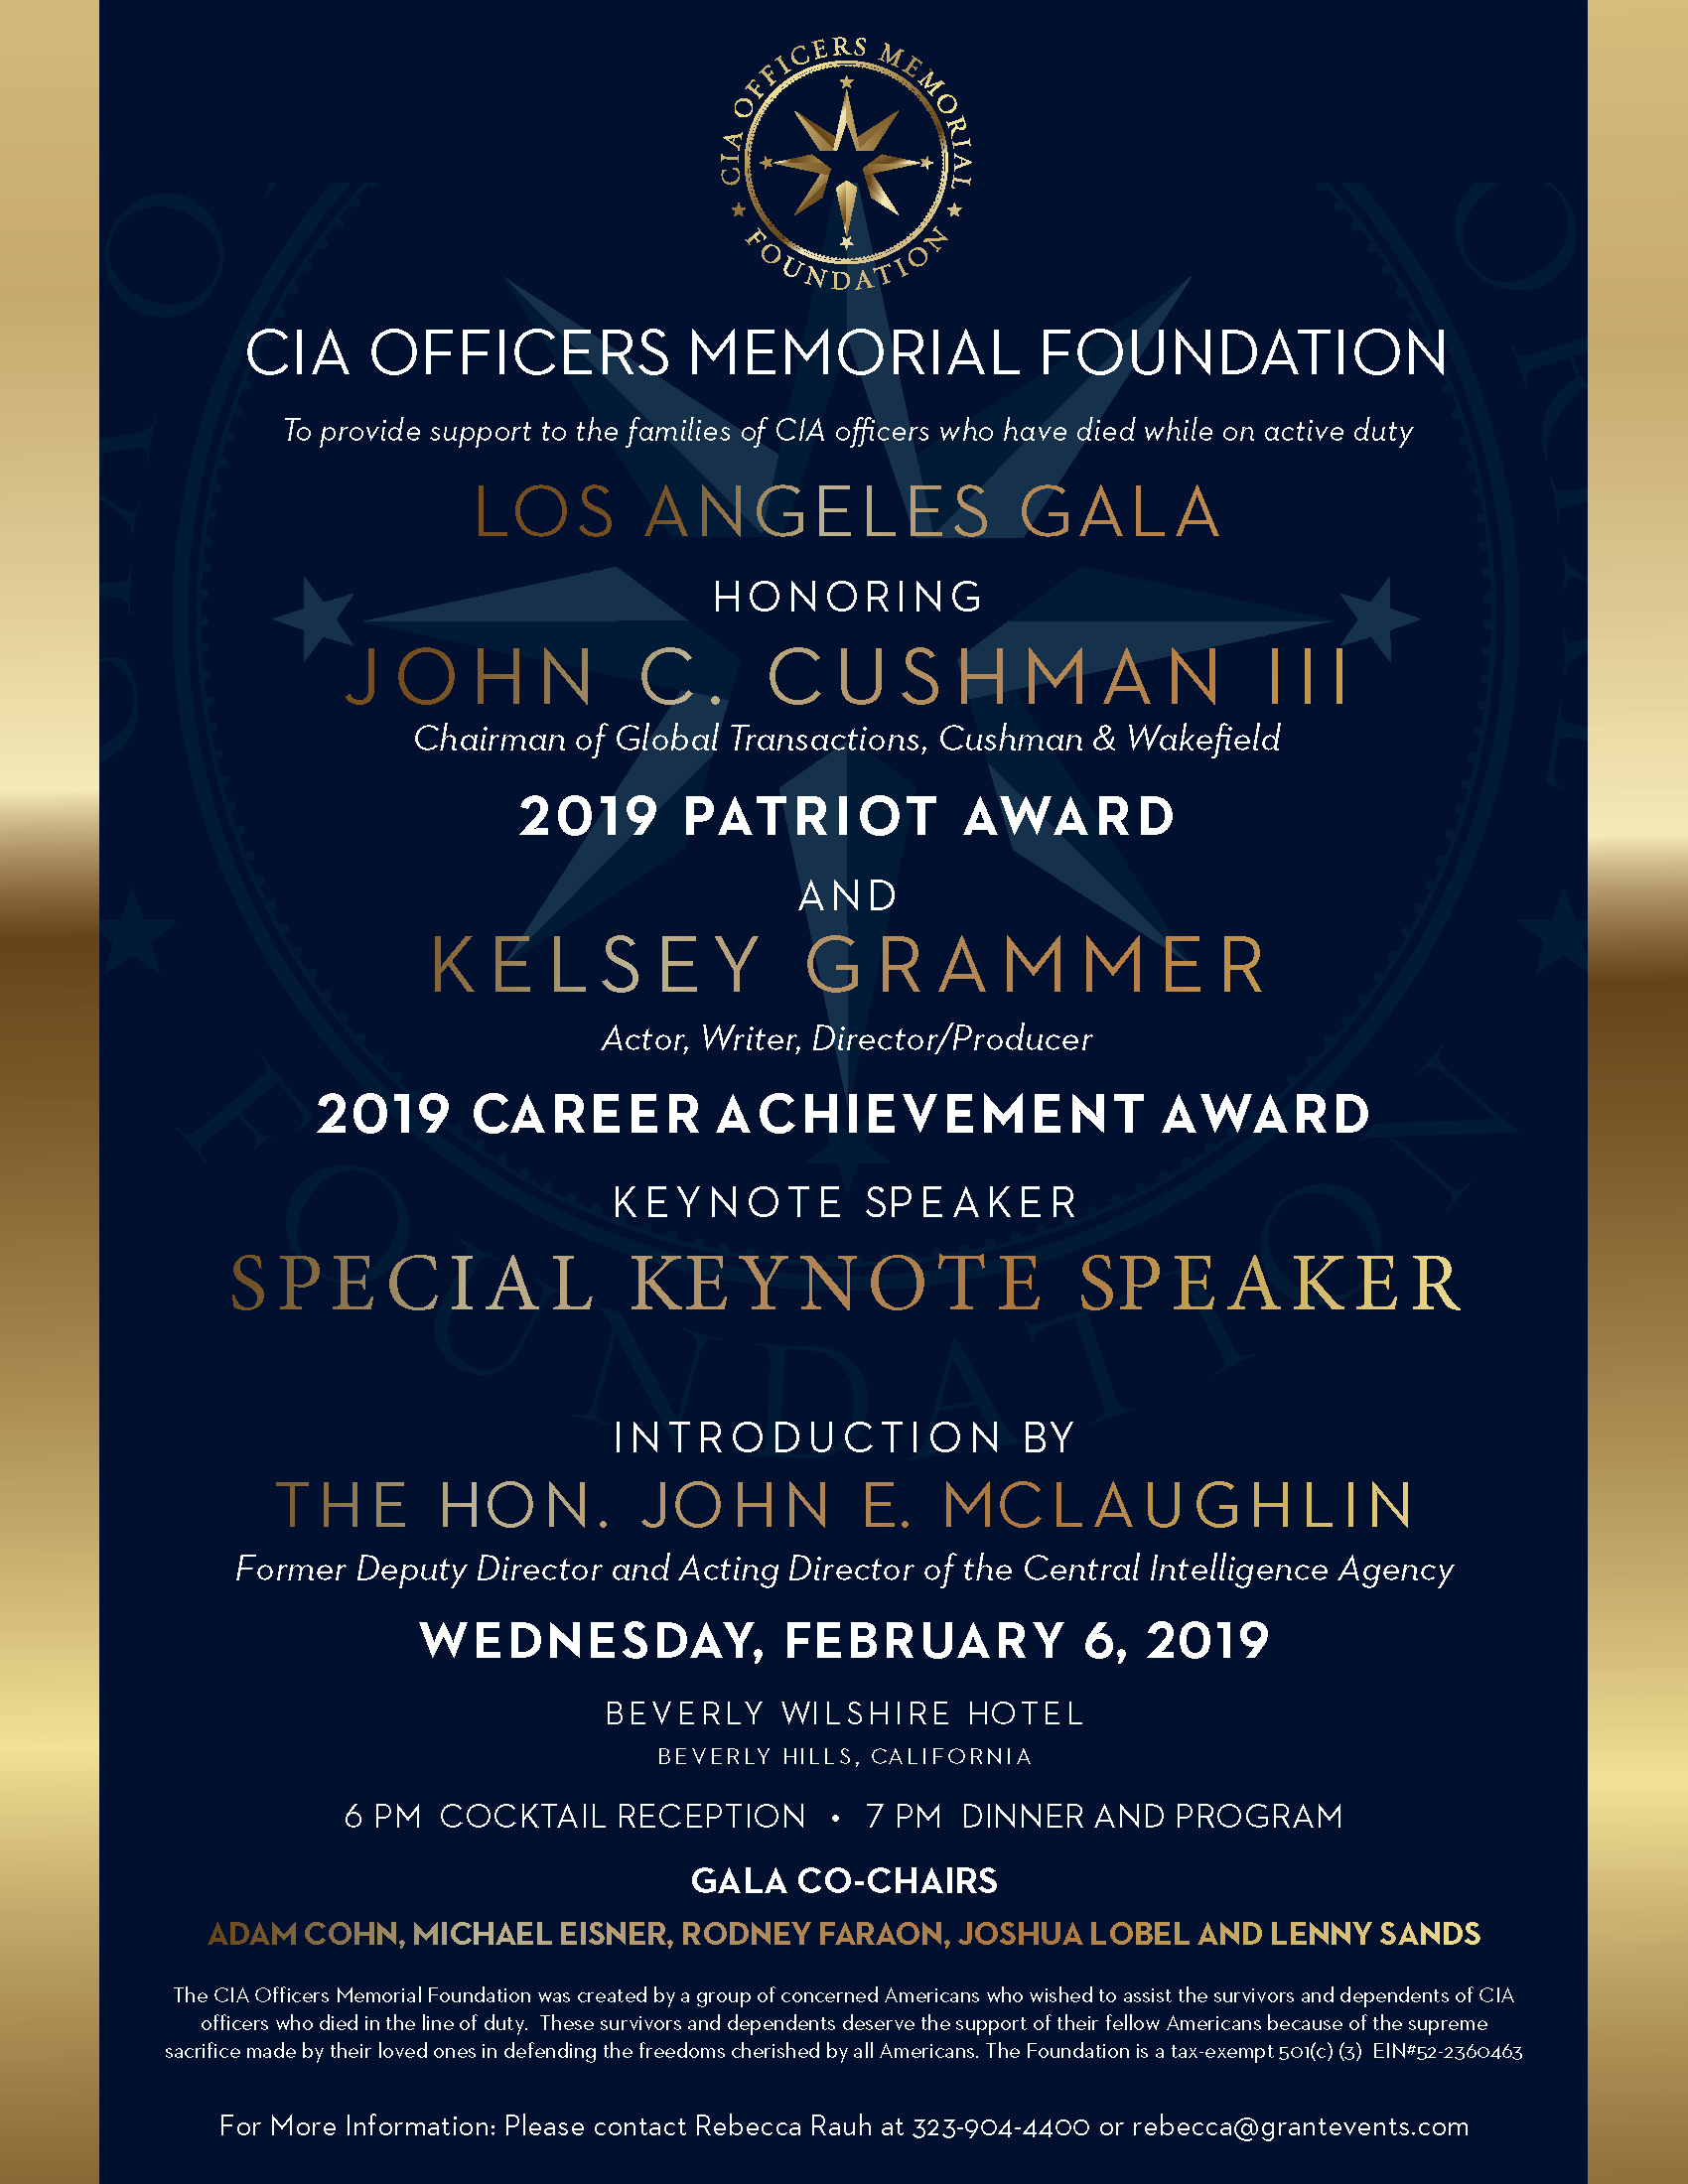 CIAOMF Los Angeles Gala Invitation.png